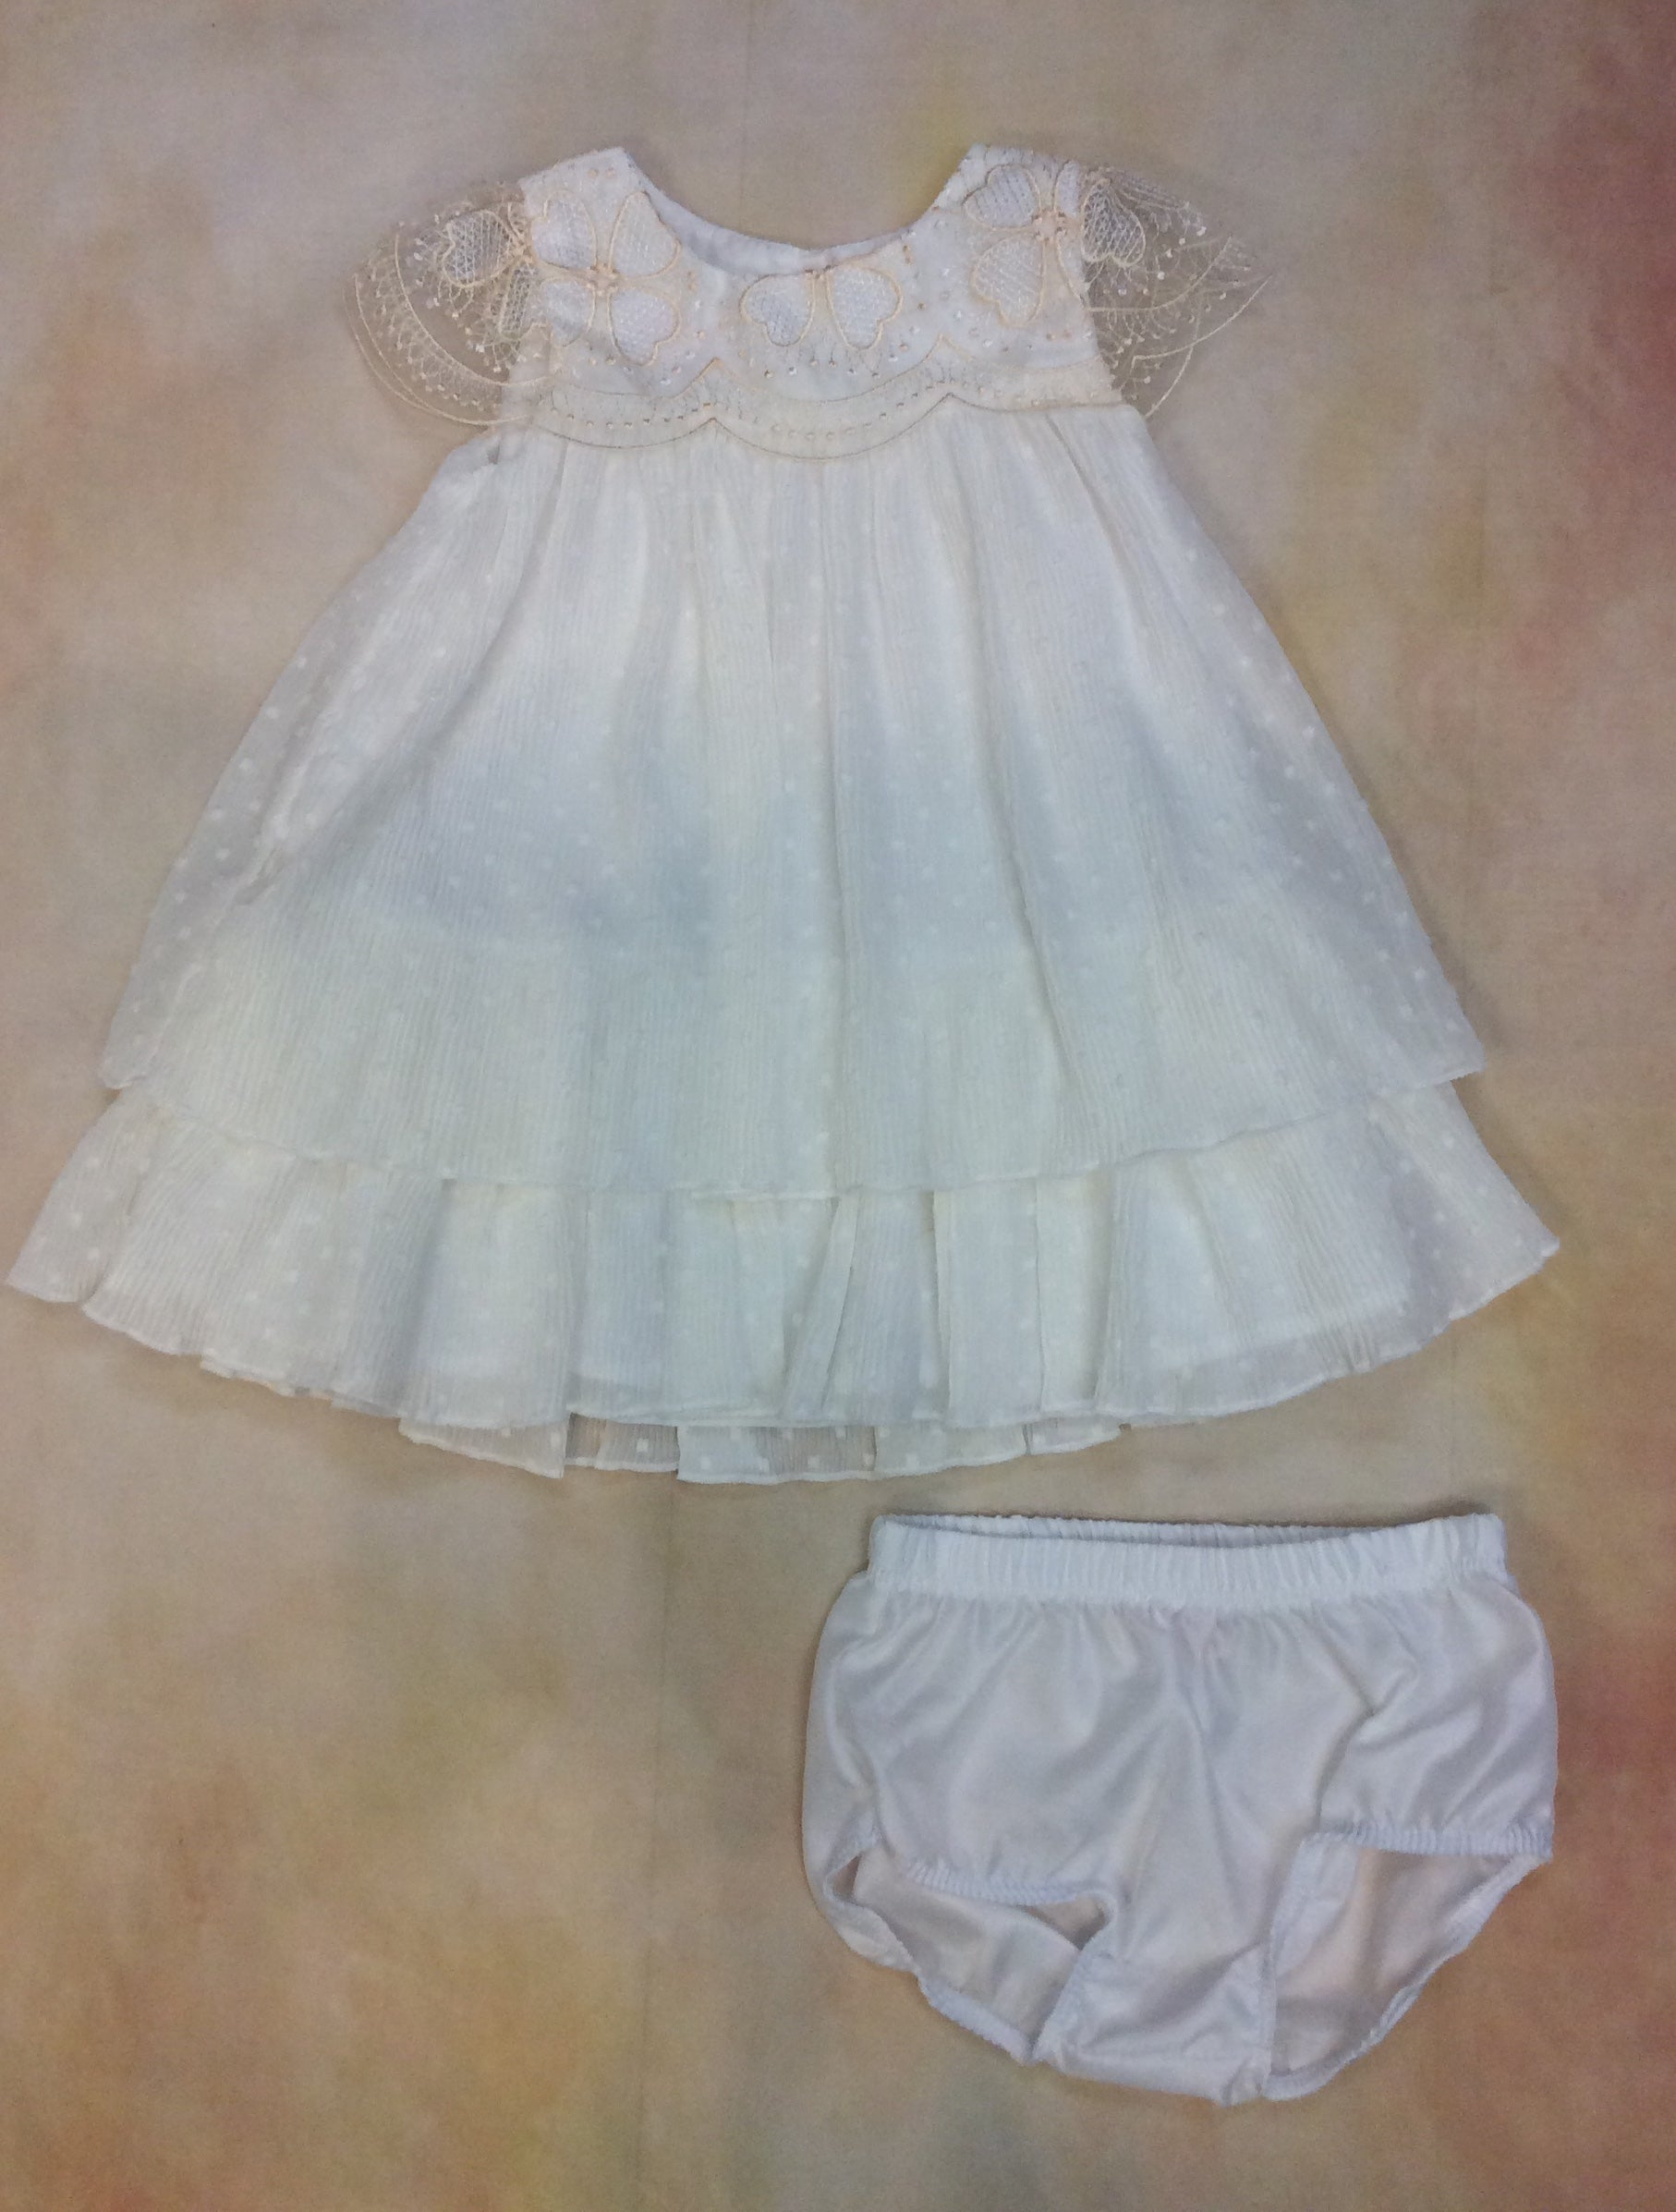 Baby Girls Ivory/Champagne lace dress w/panty BCDCHS501 - Nenes Lullaby Boutique Inc